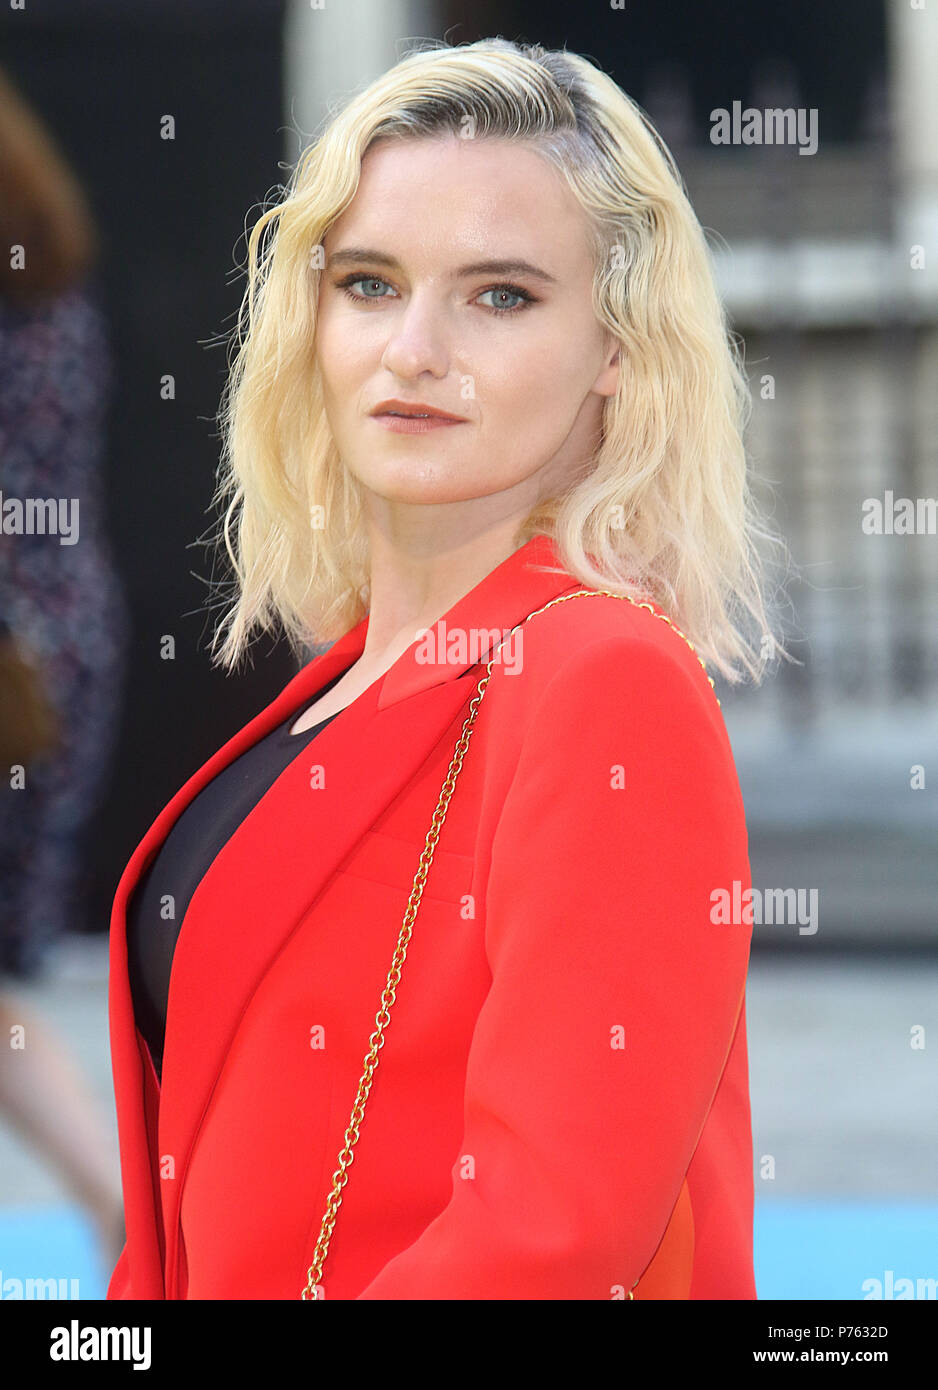 Jun 06, 2018 - Grace Chatto attending Royal Academy Of Arts 250th Summer Exhibition Preview Party at Burlington House in London, England, UK Stock Photo